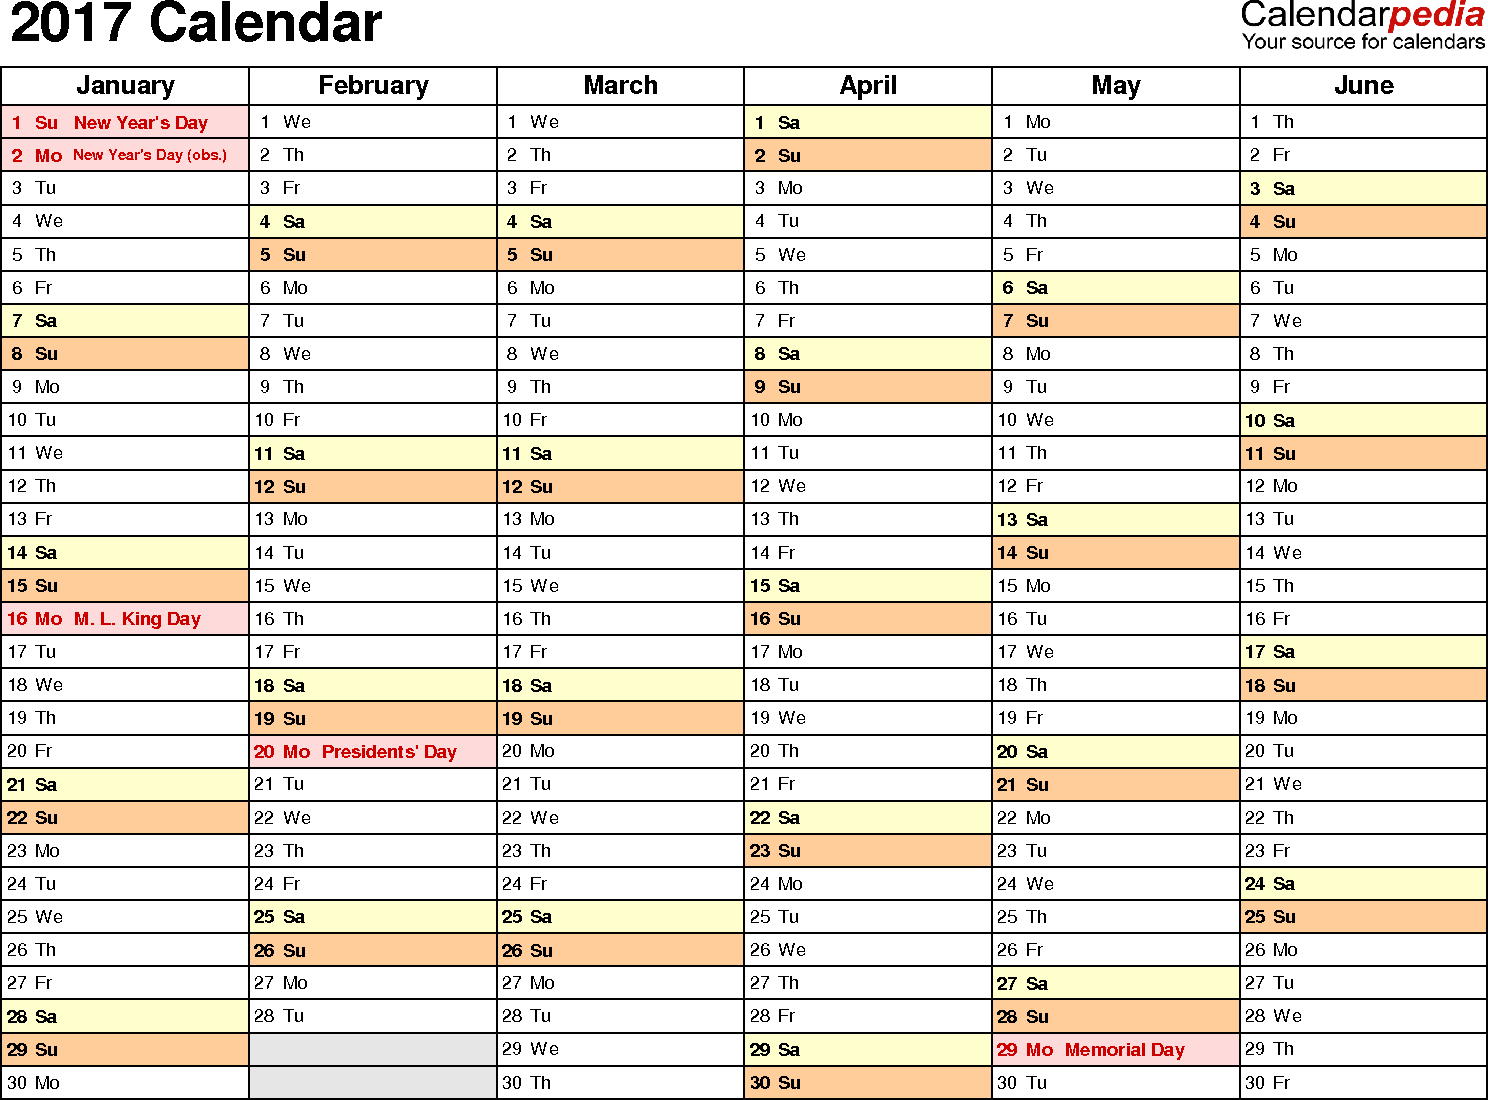 Ediblewildsus  Terrific  Calendar  Download  Free Printable Excel Templates Xls With Engaging Template   Calendar For Excel Months Horizontally  Pages Landscape Orientation With Astonishing Excel Column Filter Also Powerpivot For Excel  Download In Addition Templates Excel And Progress Bar Excel As Well As Calculate A Percentage In Excel Additionally Excel Name Cell From Calendarpediacom With Ediblewildsus  Engaging  Calendar  Download  Free Printable Excel Templates Xls With Astonishing Template   Calendar For Excel Months Horizontally  Pages Landscape Orientation And Terrific Excel Column Filter Also Powerpivot For Excel  Download In Addition Templates Excel From Calendarpediacom